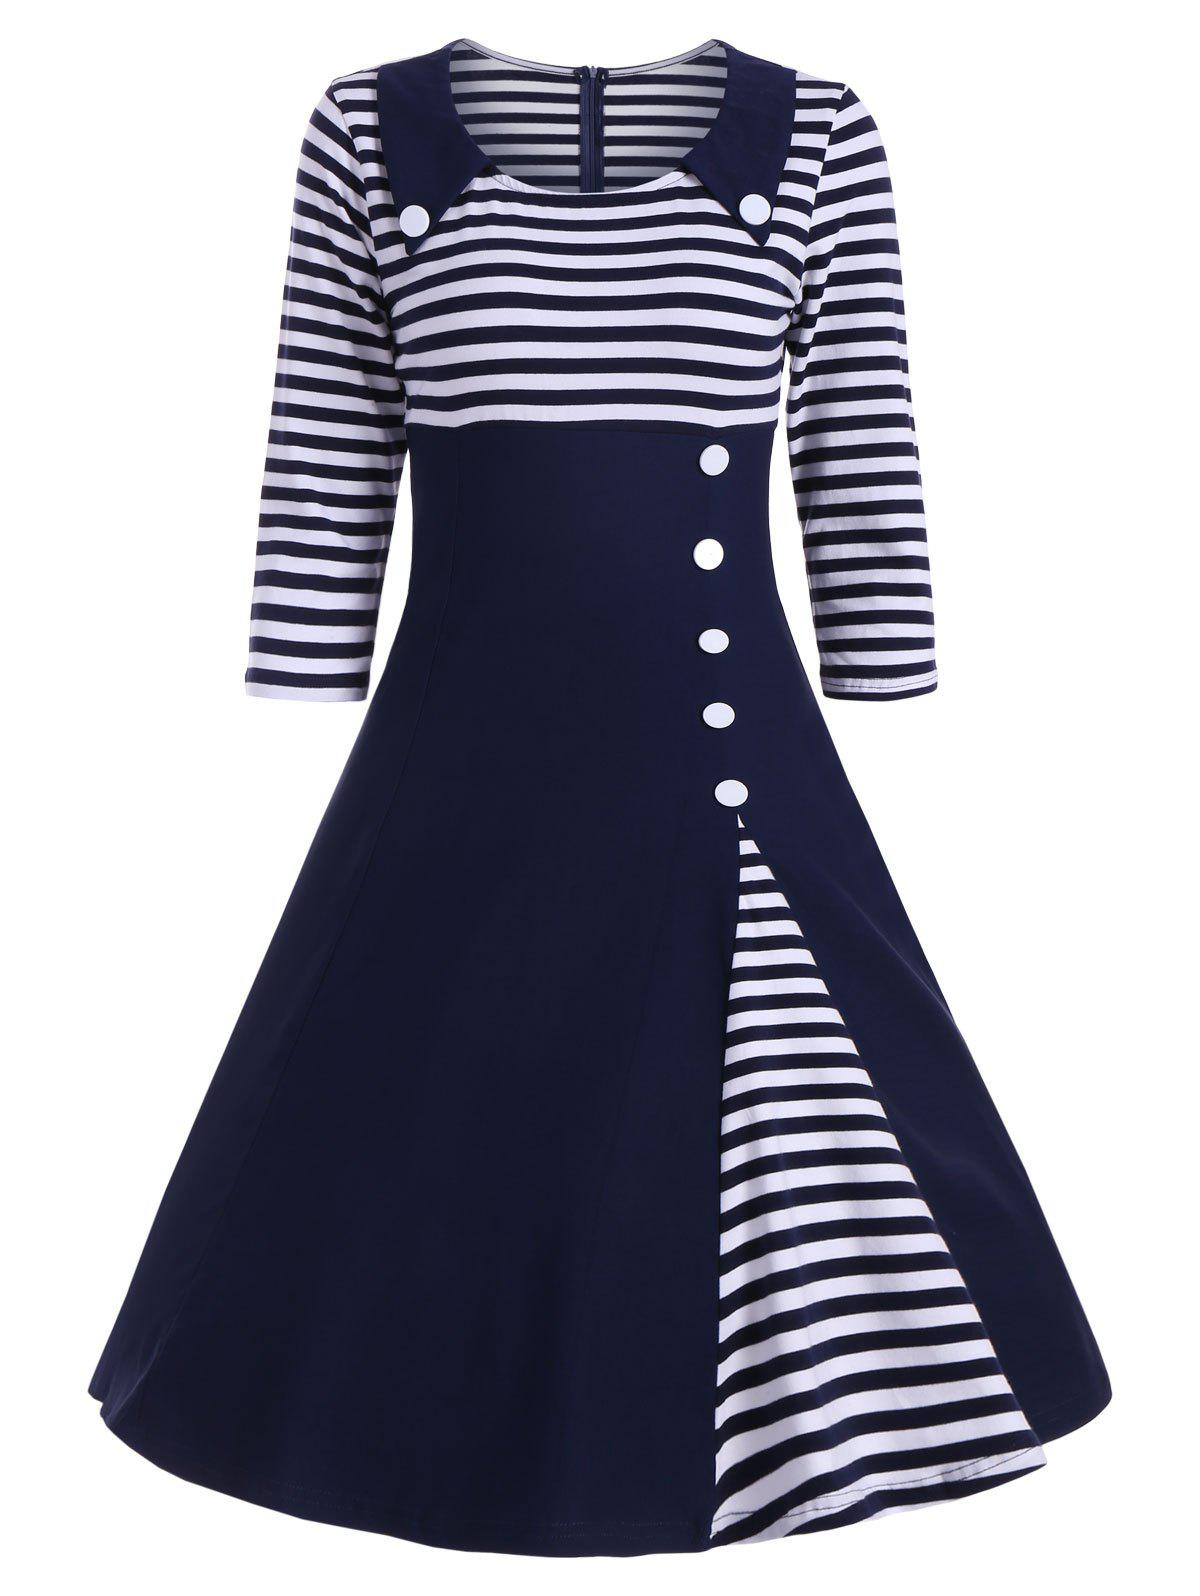 Button Embellished Striped A Line Vintage DressWOMEN<br><br>Size: 2XL; Color: DEEP BLUE; Style: Vintage; Material: Polyester,Spandex; Silhouette: A-Line; Dresses Length: Knee-Length; Neckline: Round Collar; Sleeve Length: 3/4 Length Sleeves; Embellishment: Button; Pattern Type: Striped; With Belt: No; Season: Fall,Spring; Weight: 0.4200kg; Package Contents: 1 x Dress;